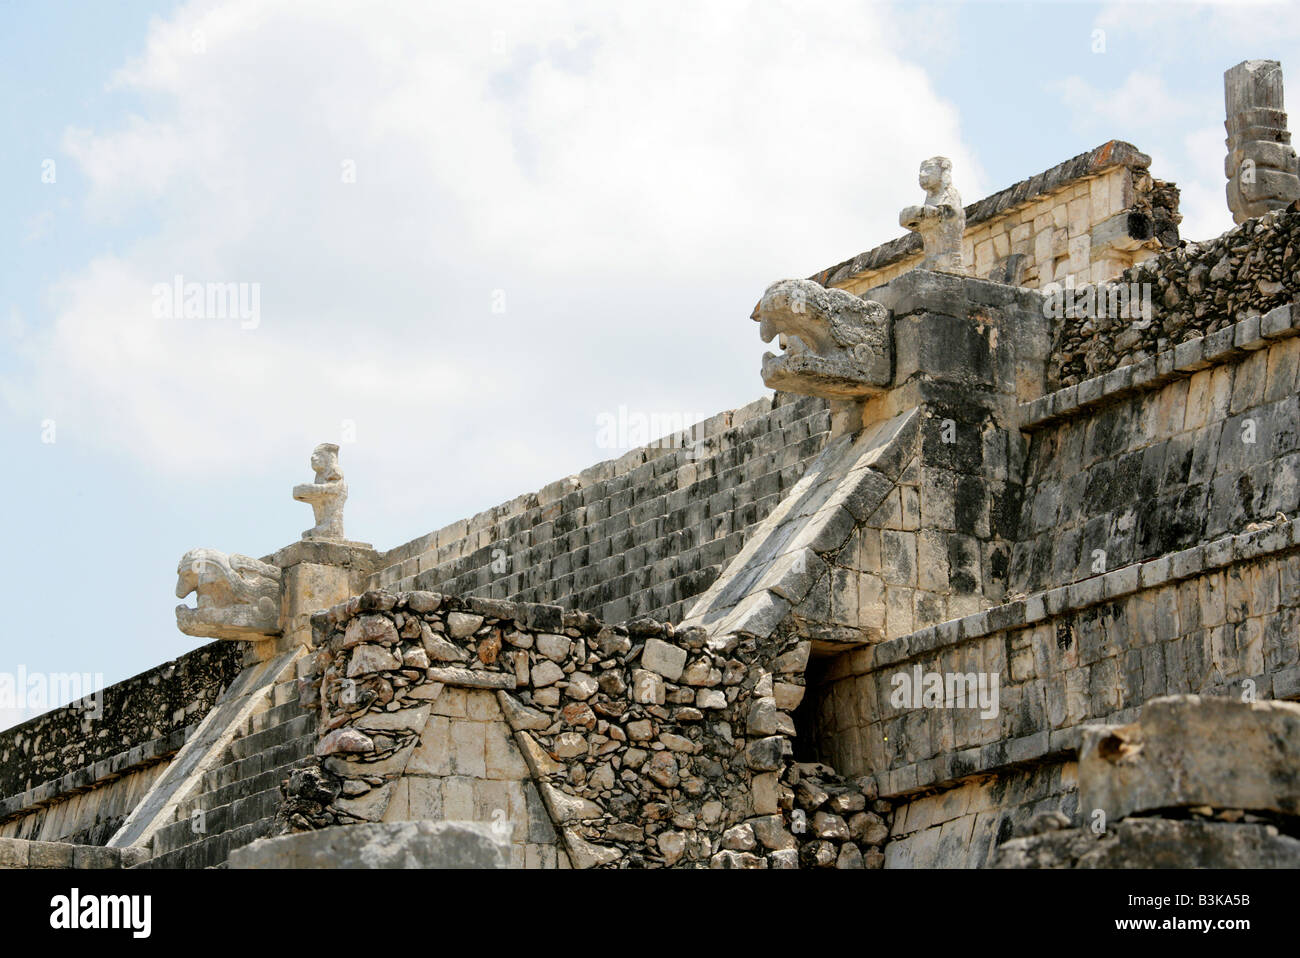 Detail of the Temple of the Warriors, Chichen Itza Archaeological Site, Chichen Itza, Yucatan Peninsula, Mexico Stock Photo